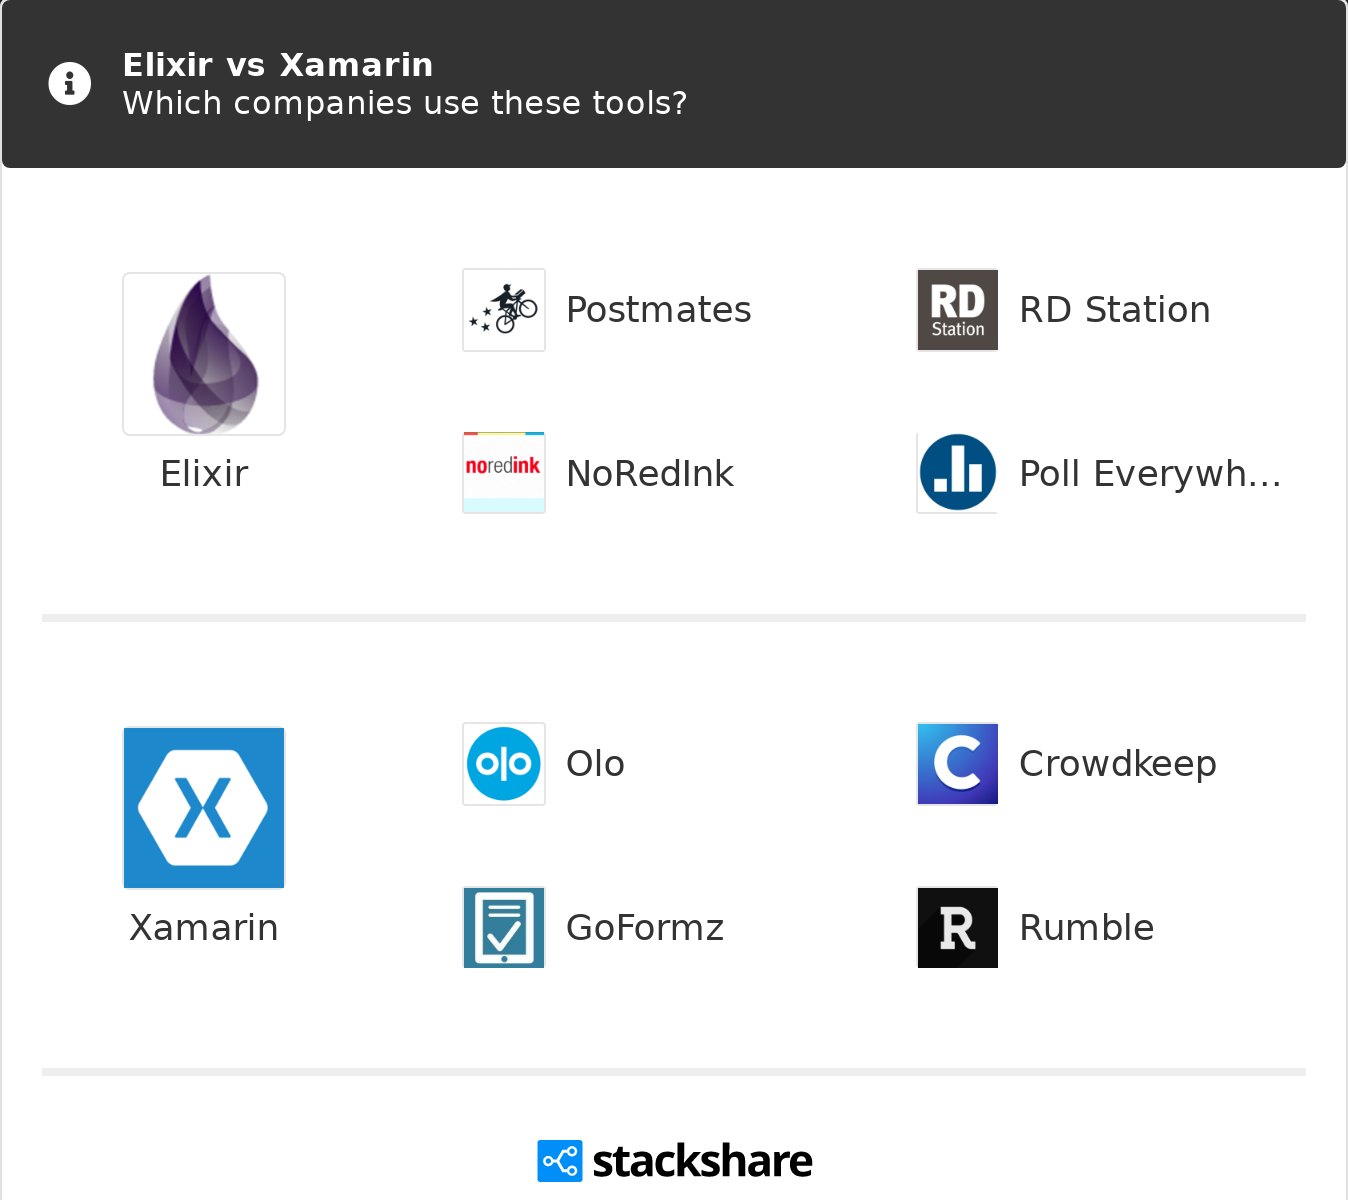 Elixir vs Xamarin | What are the differences?